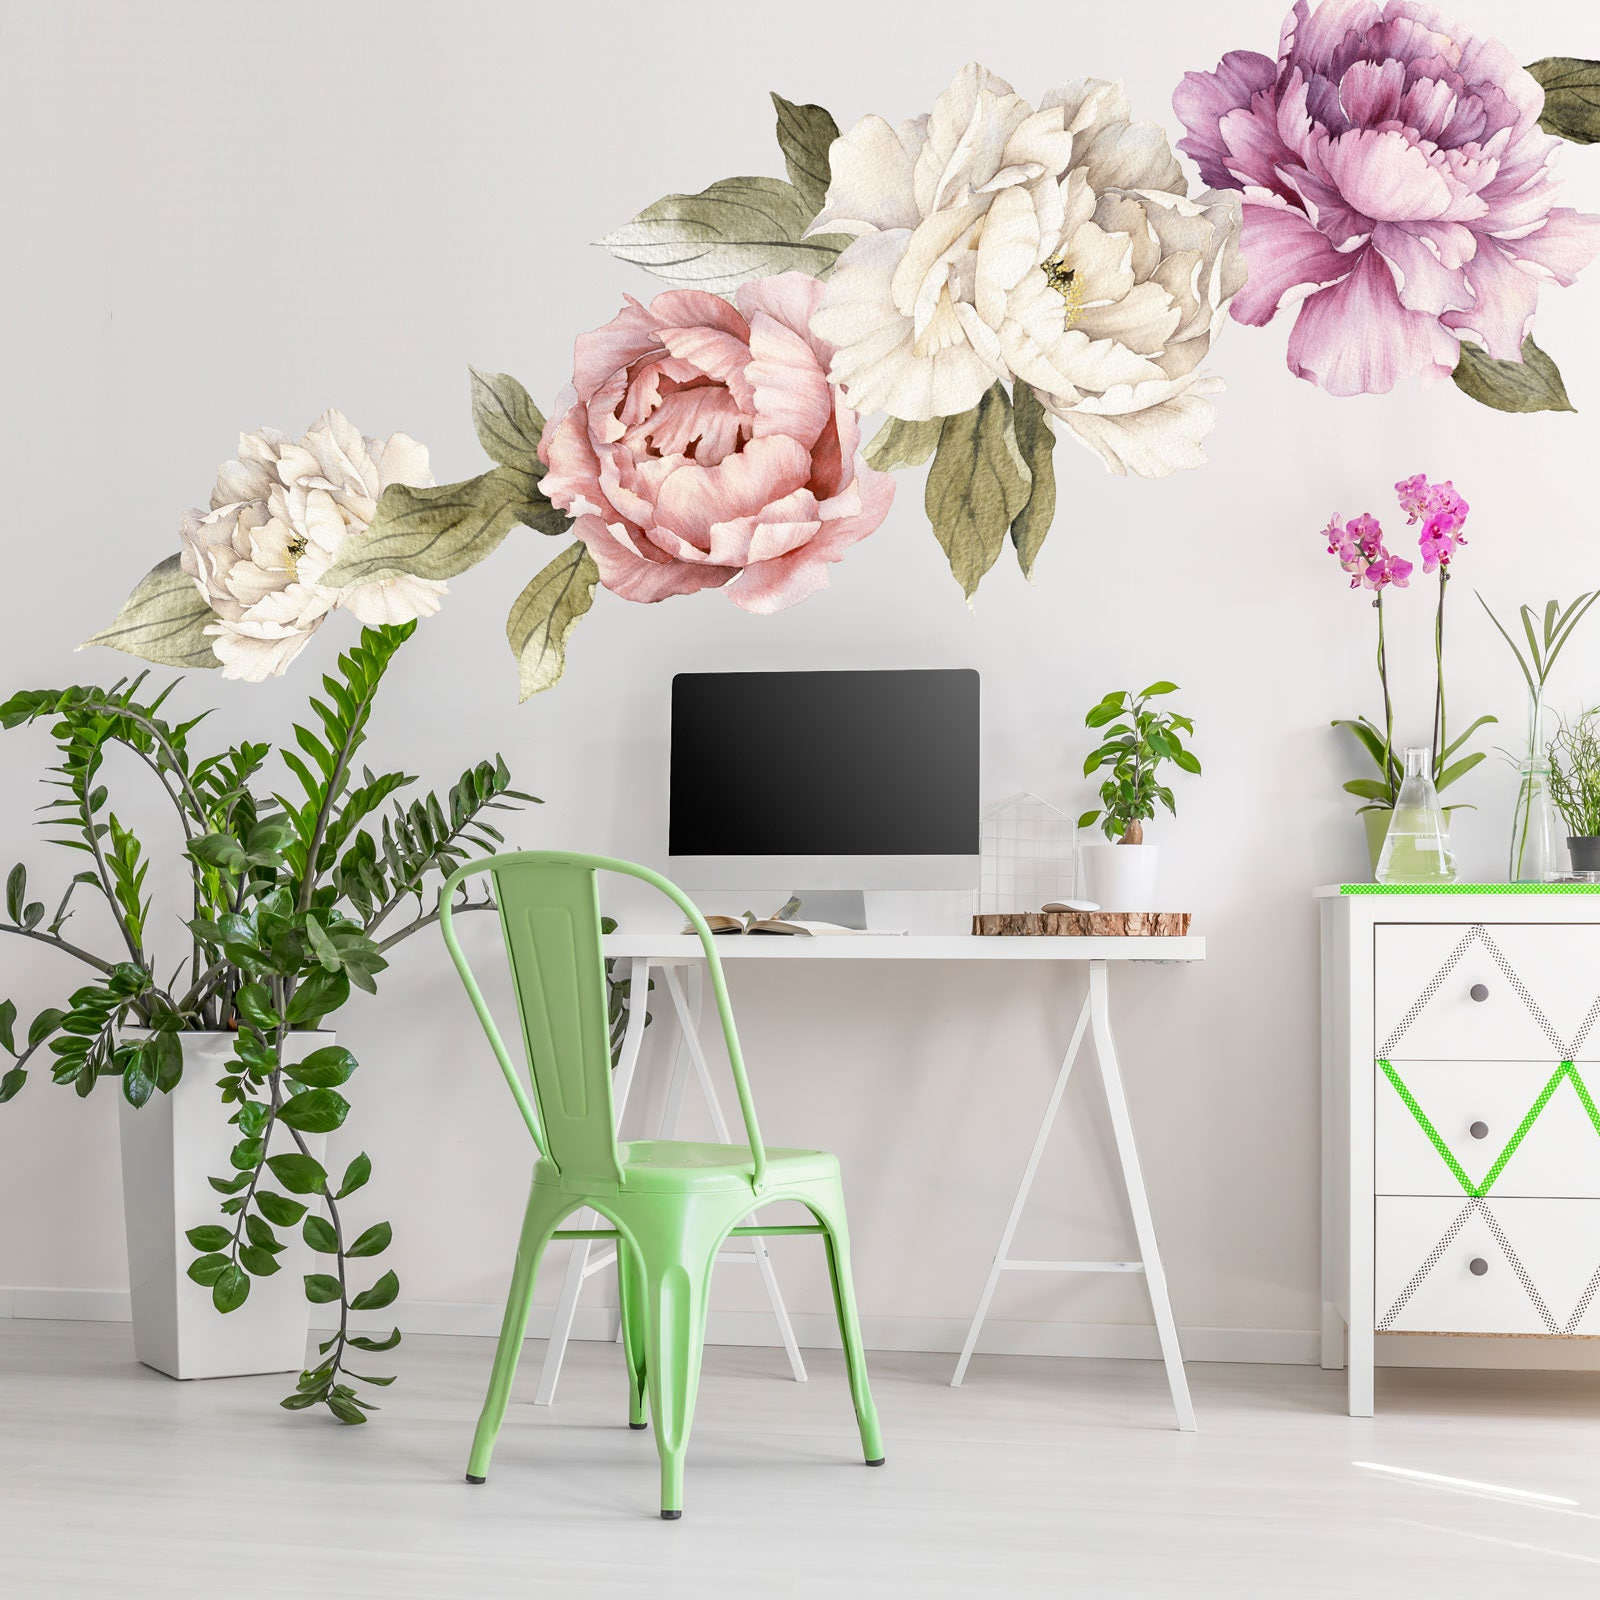 Floral wall mural large peony wall stickers watercolor - Flower wallpaper mural ...